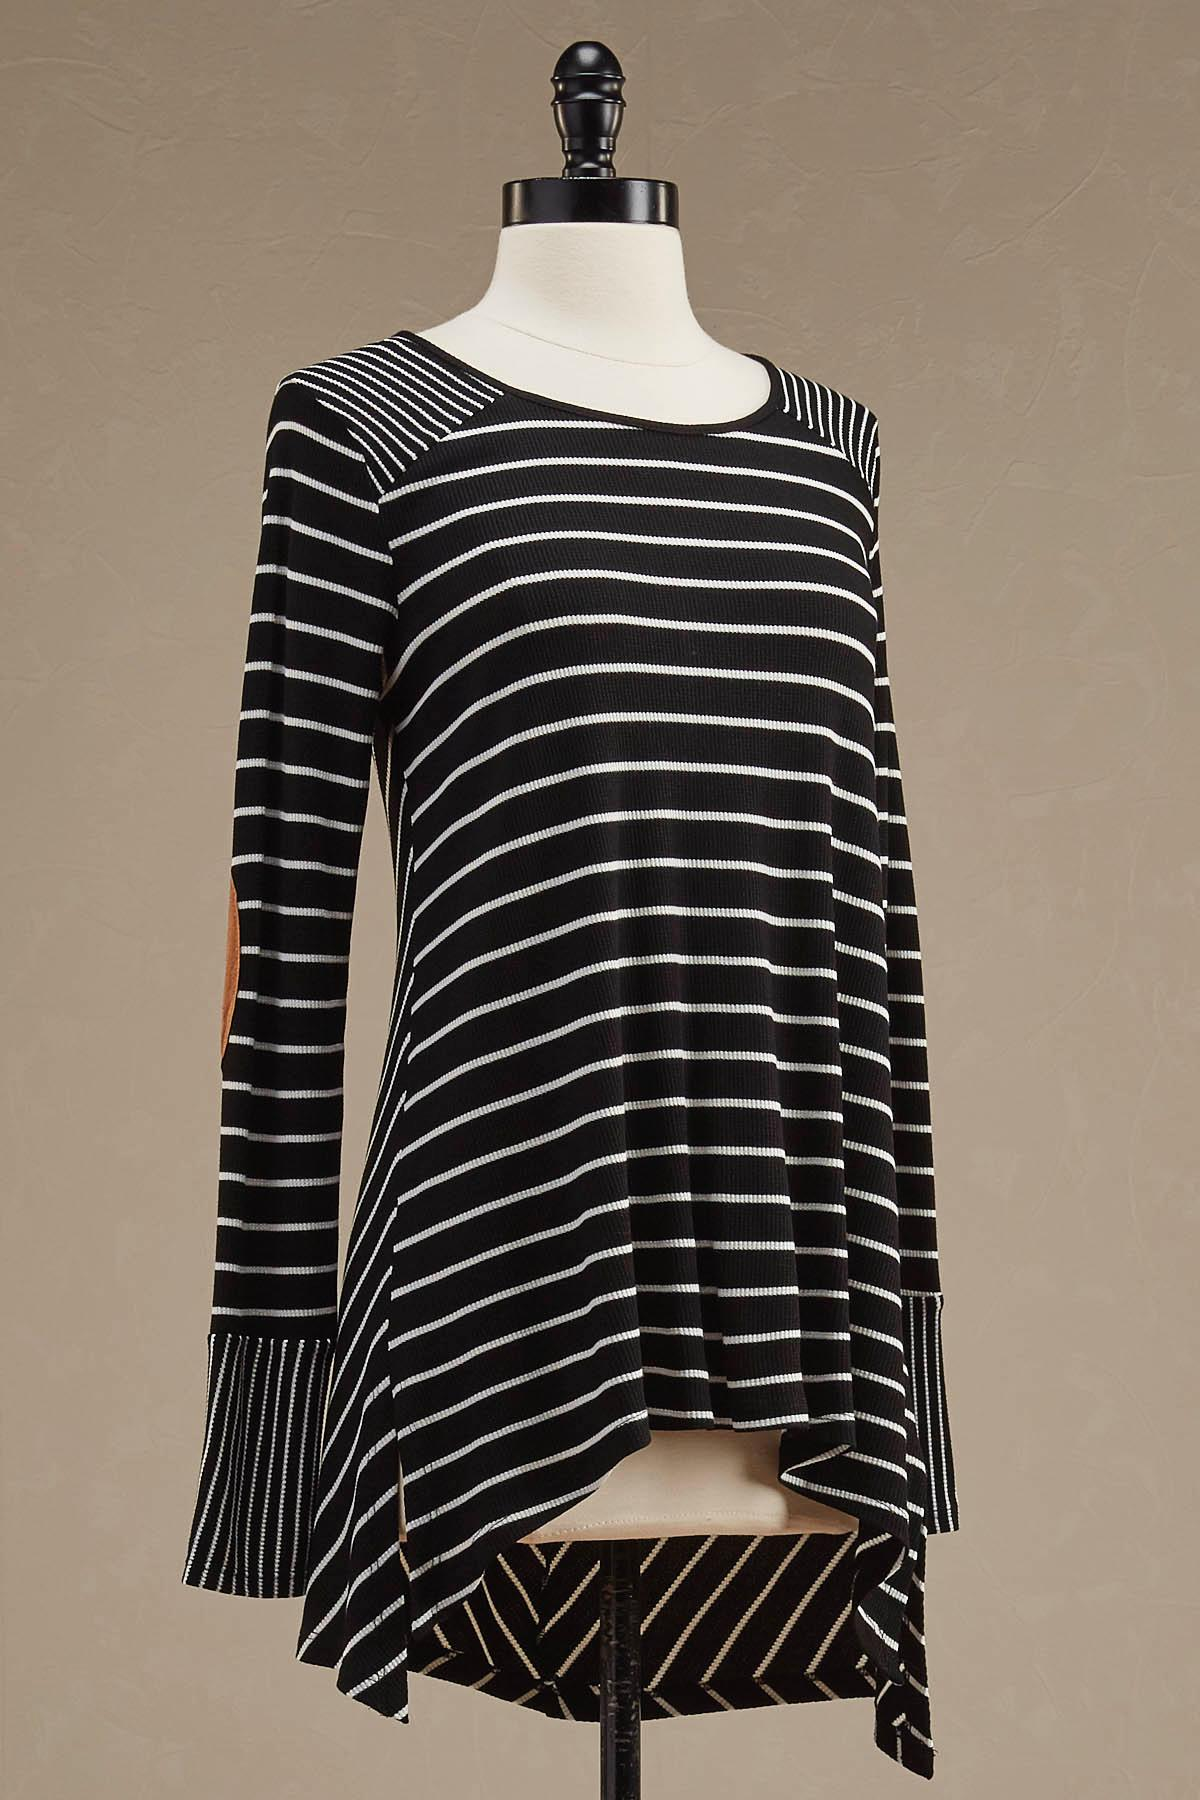 Striped Elbow Patch Swing Top